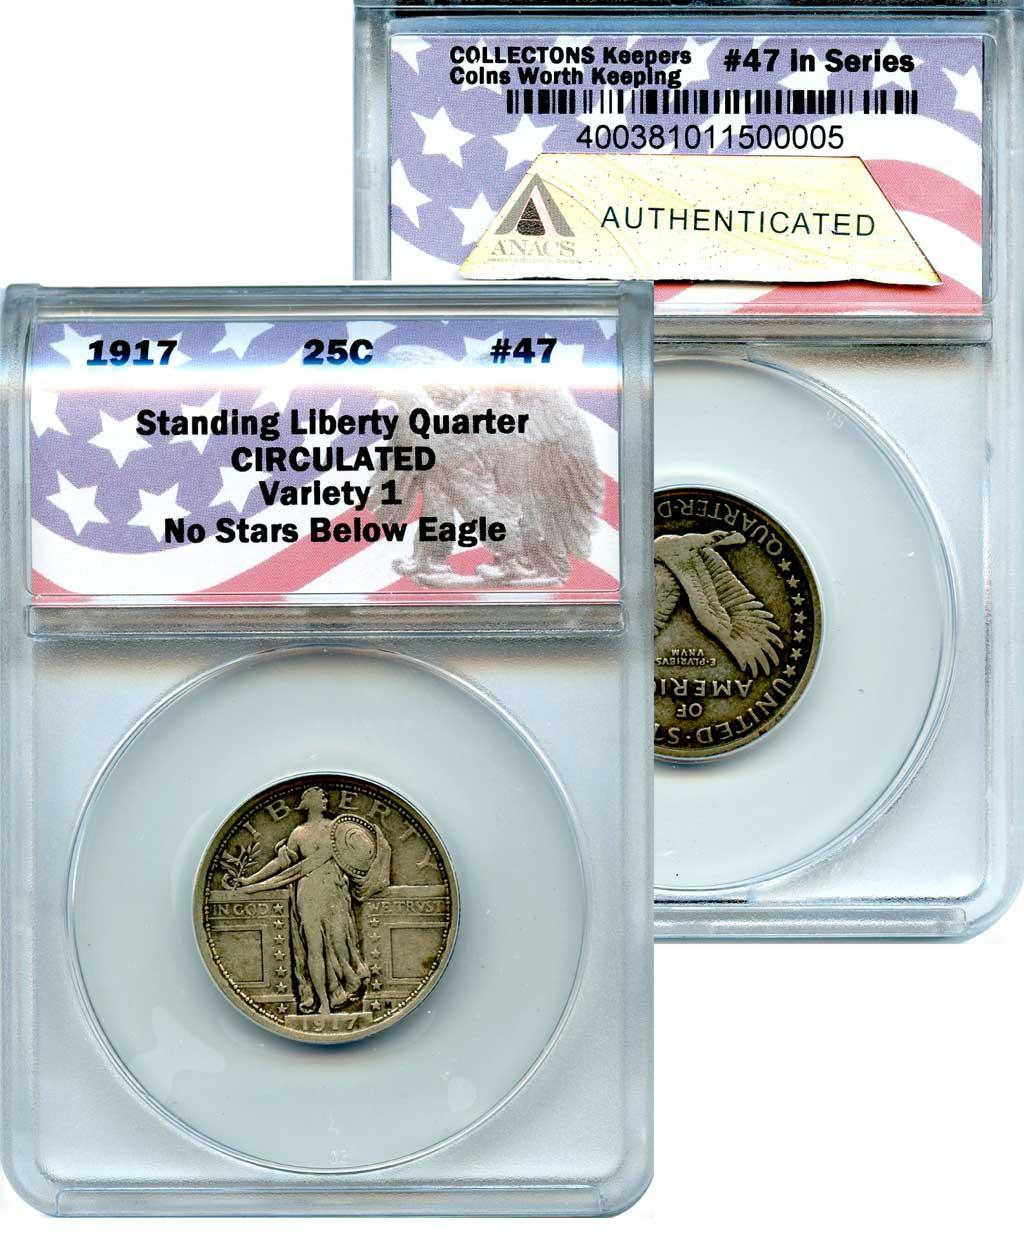 CollecTons Keepers #47: 1917 Type 1 Standing Liberty Quarter Certified in Exclusive ANACS Holder